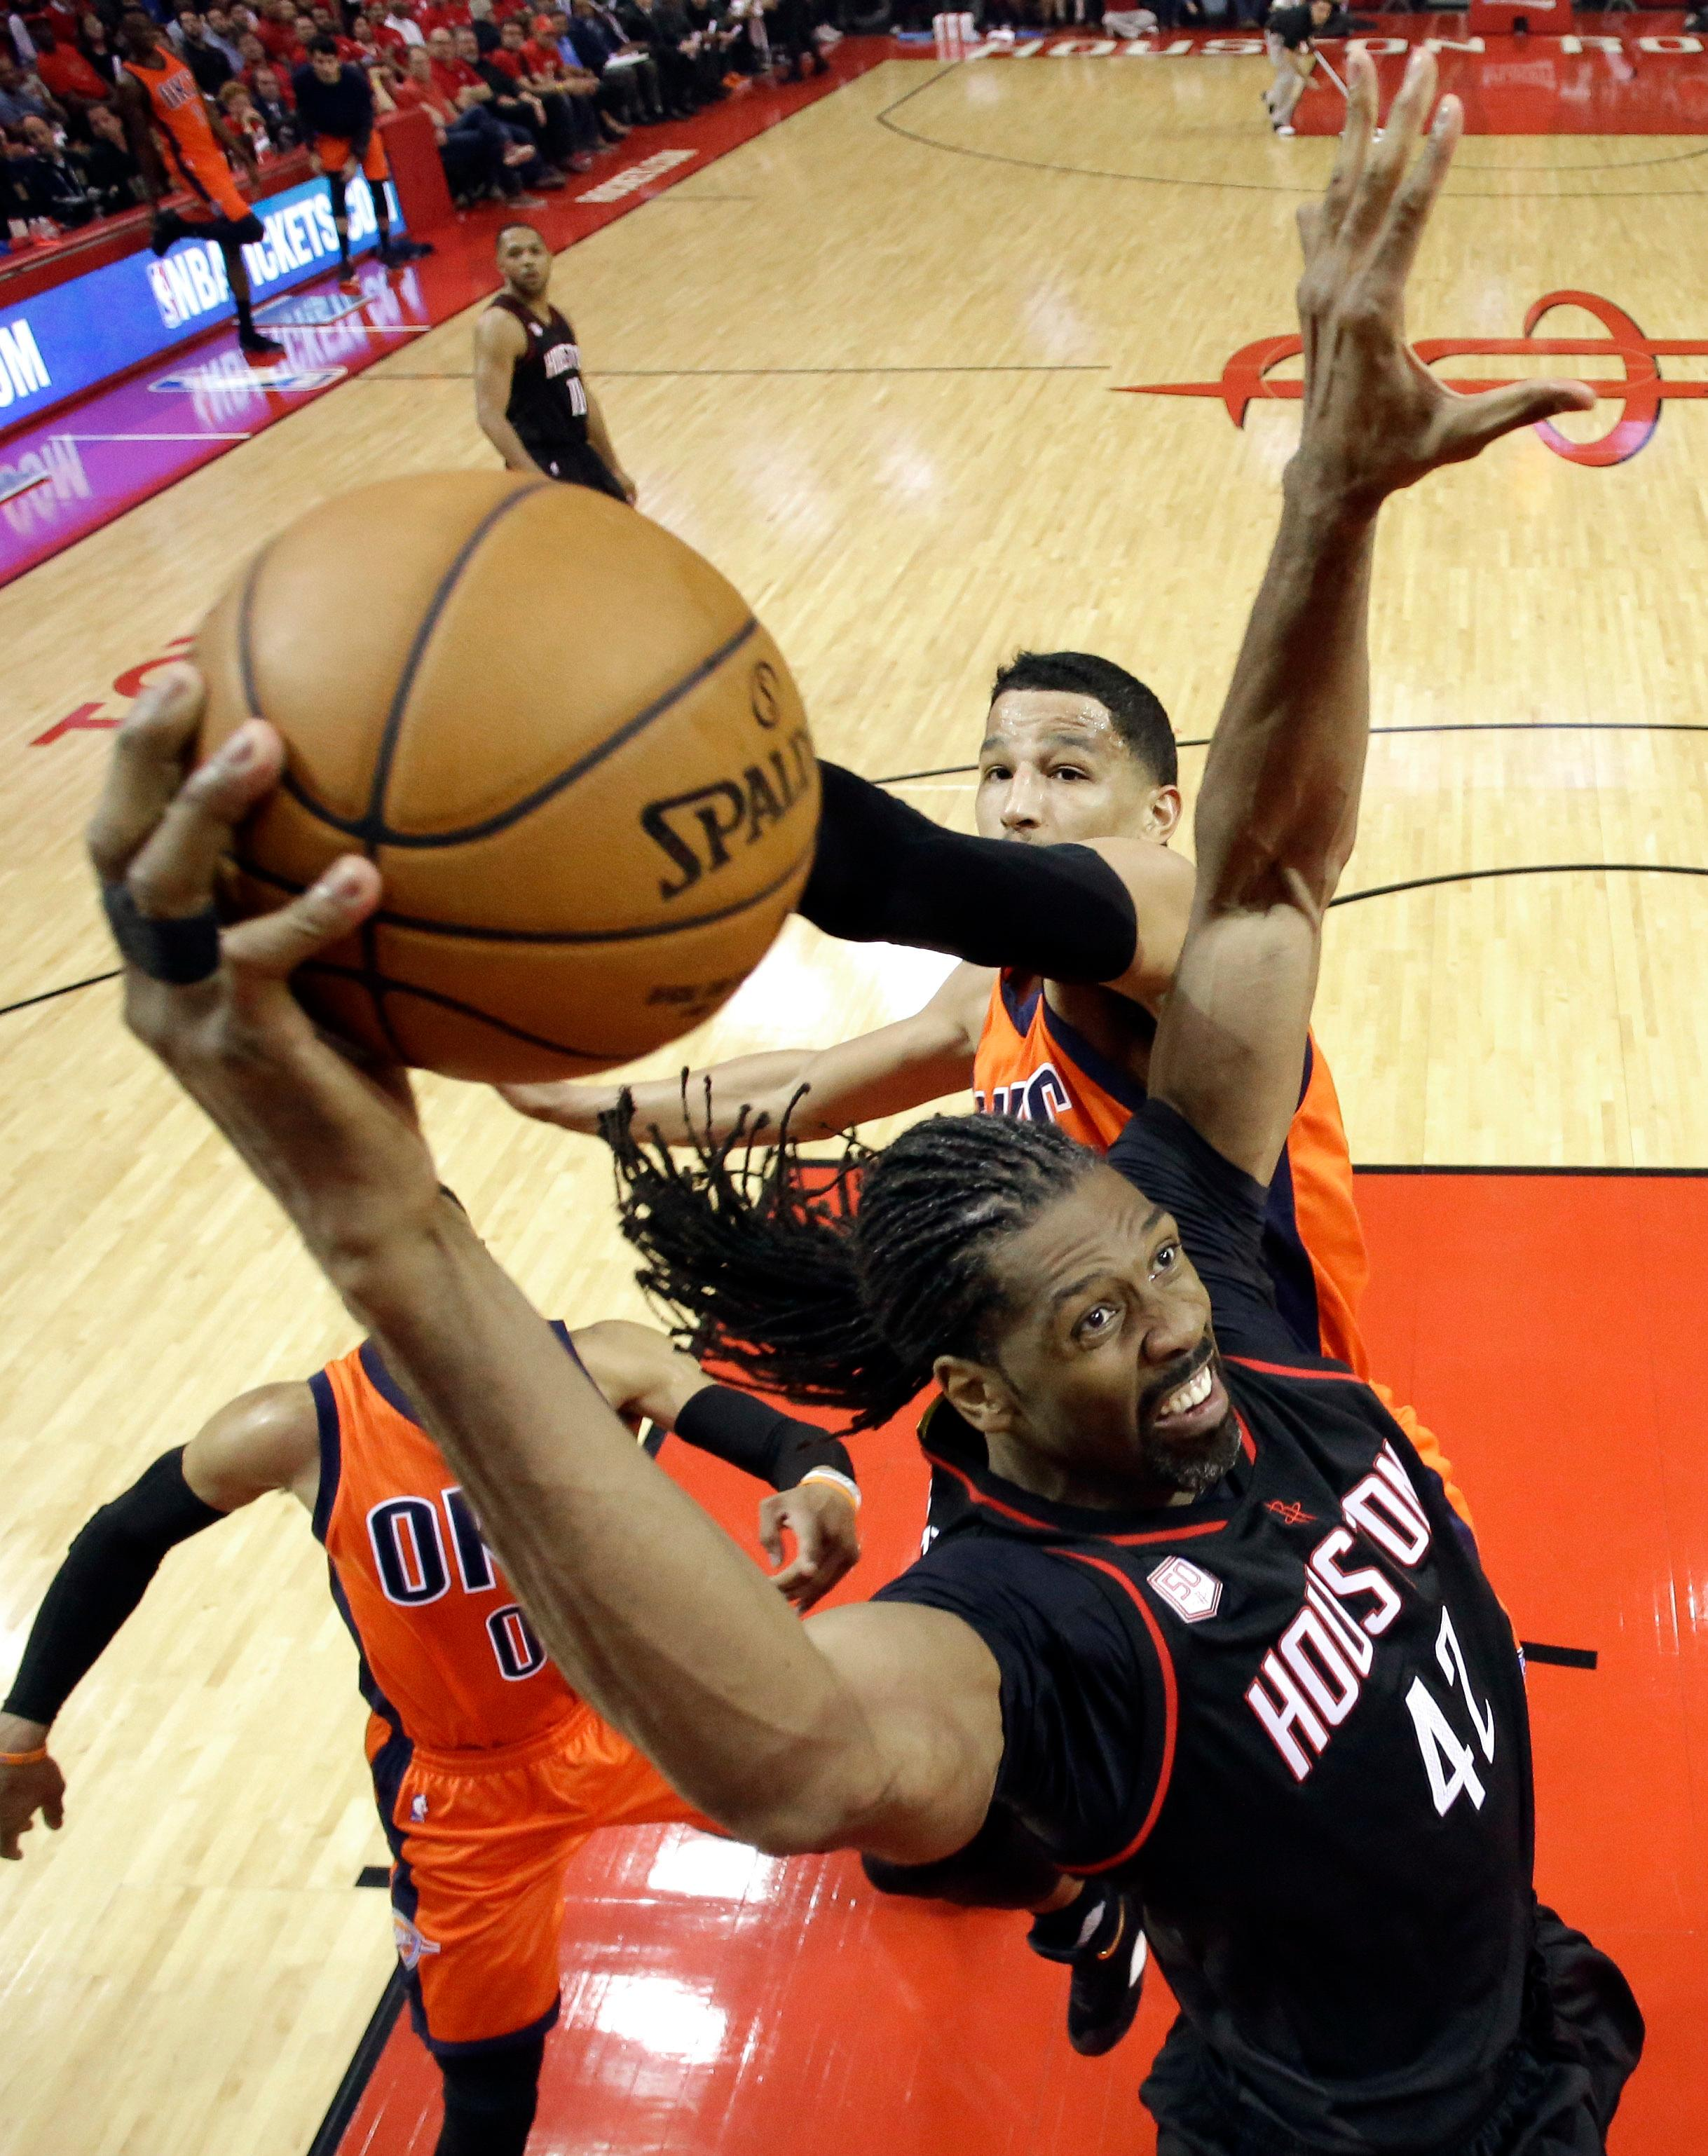 Houston Rockets' Nene (42) goes up for a shot as Oklahoma City Thunder's Andre Roberson defends during the first half in Game 1 of an NBA basketball first-round playoff series, Sunday, April 16, 2017, in Houston. (AP Photo/David J. Phillip)